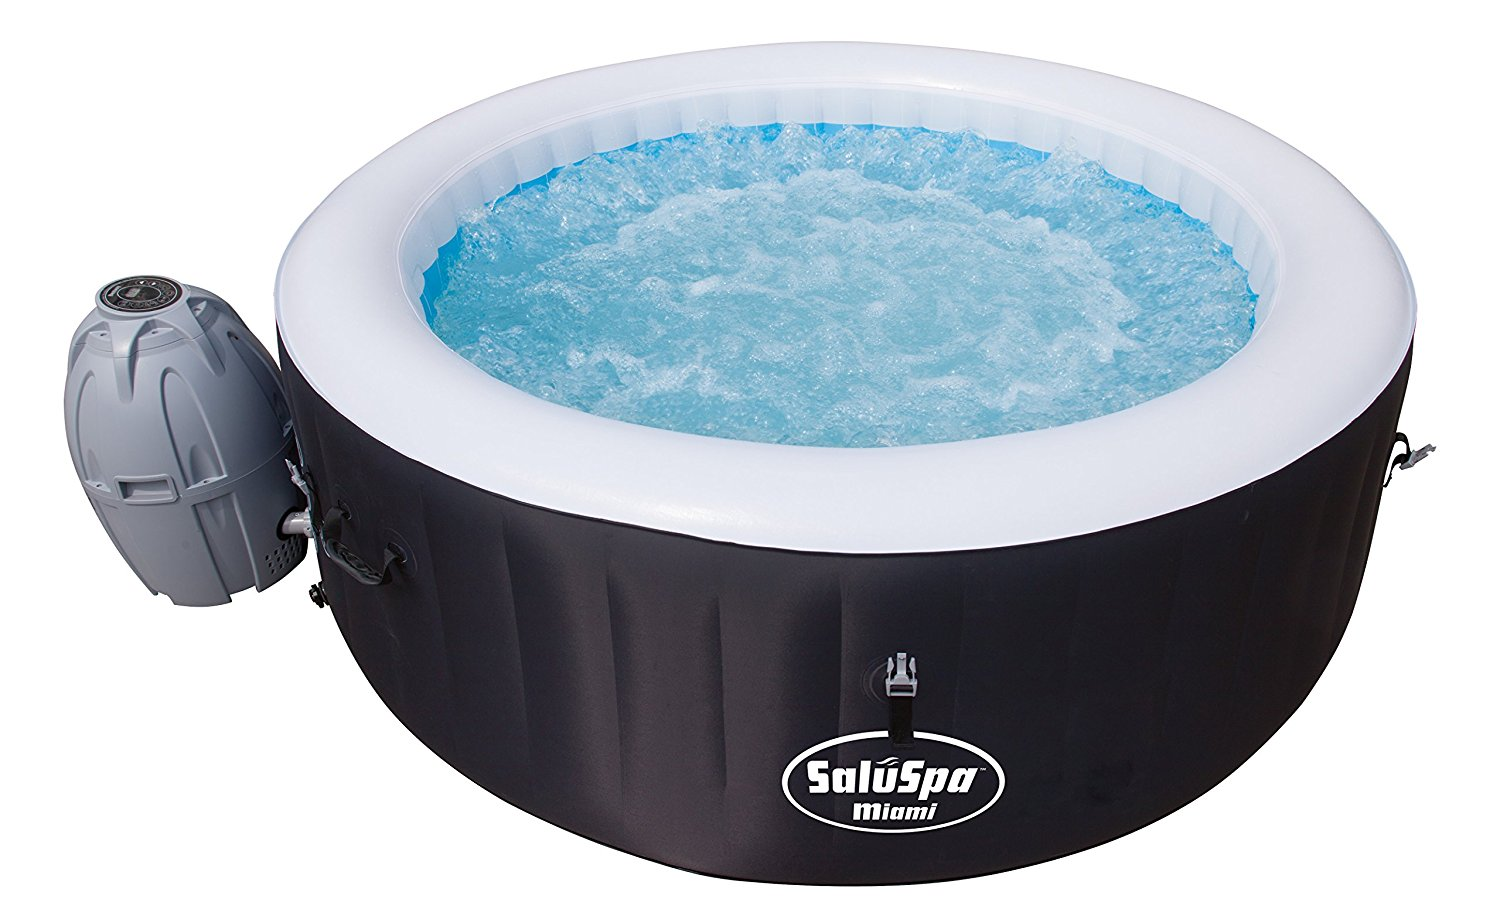 SaluSpa Miami AirJet Inflatable Hot Tub Review – Laze Up!